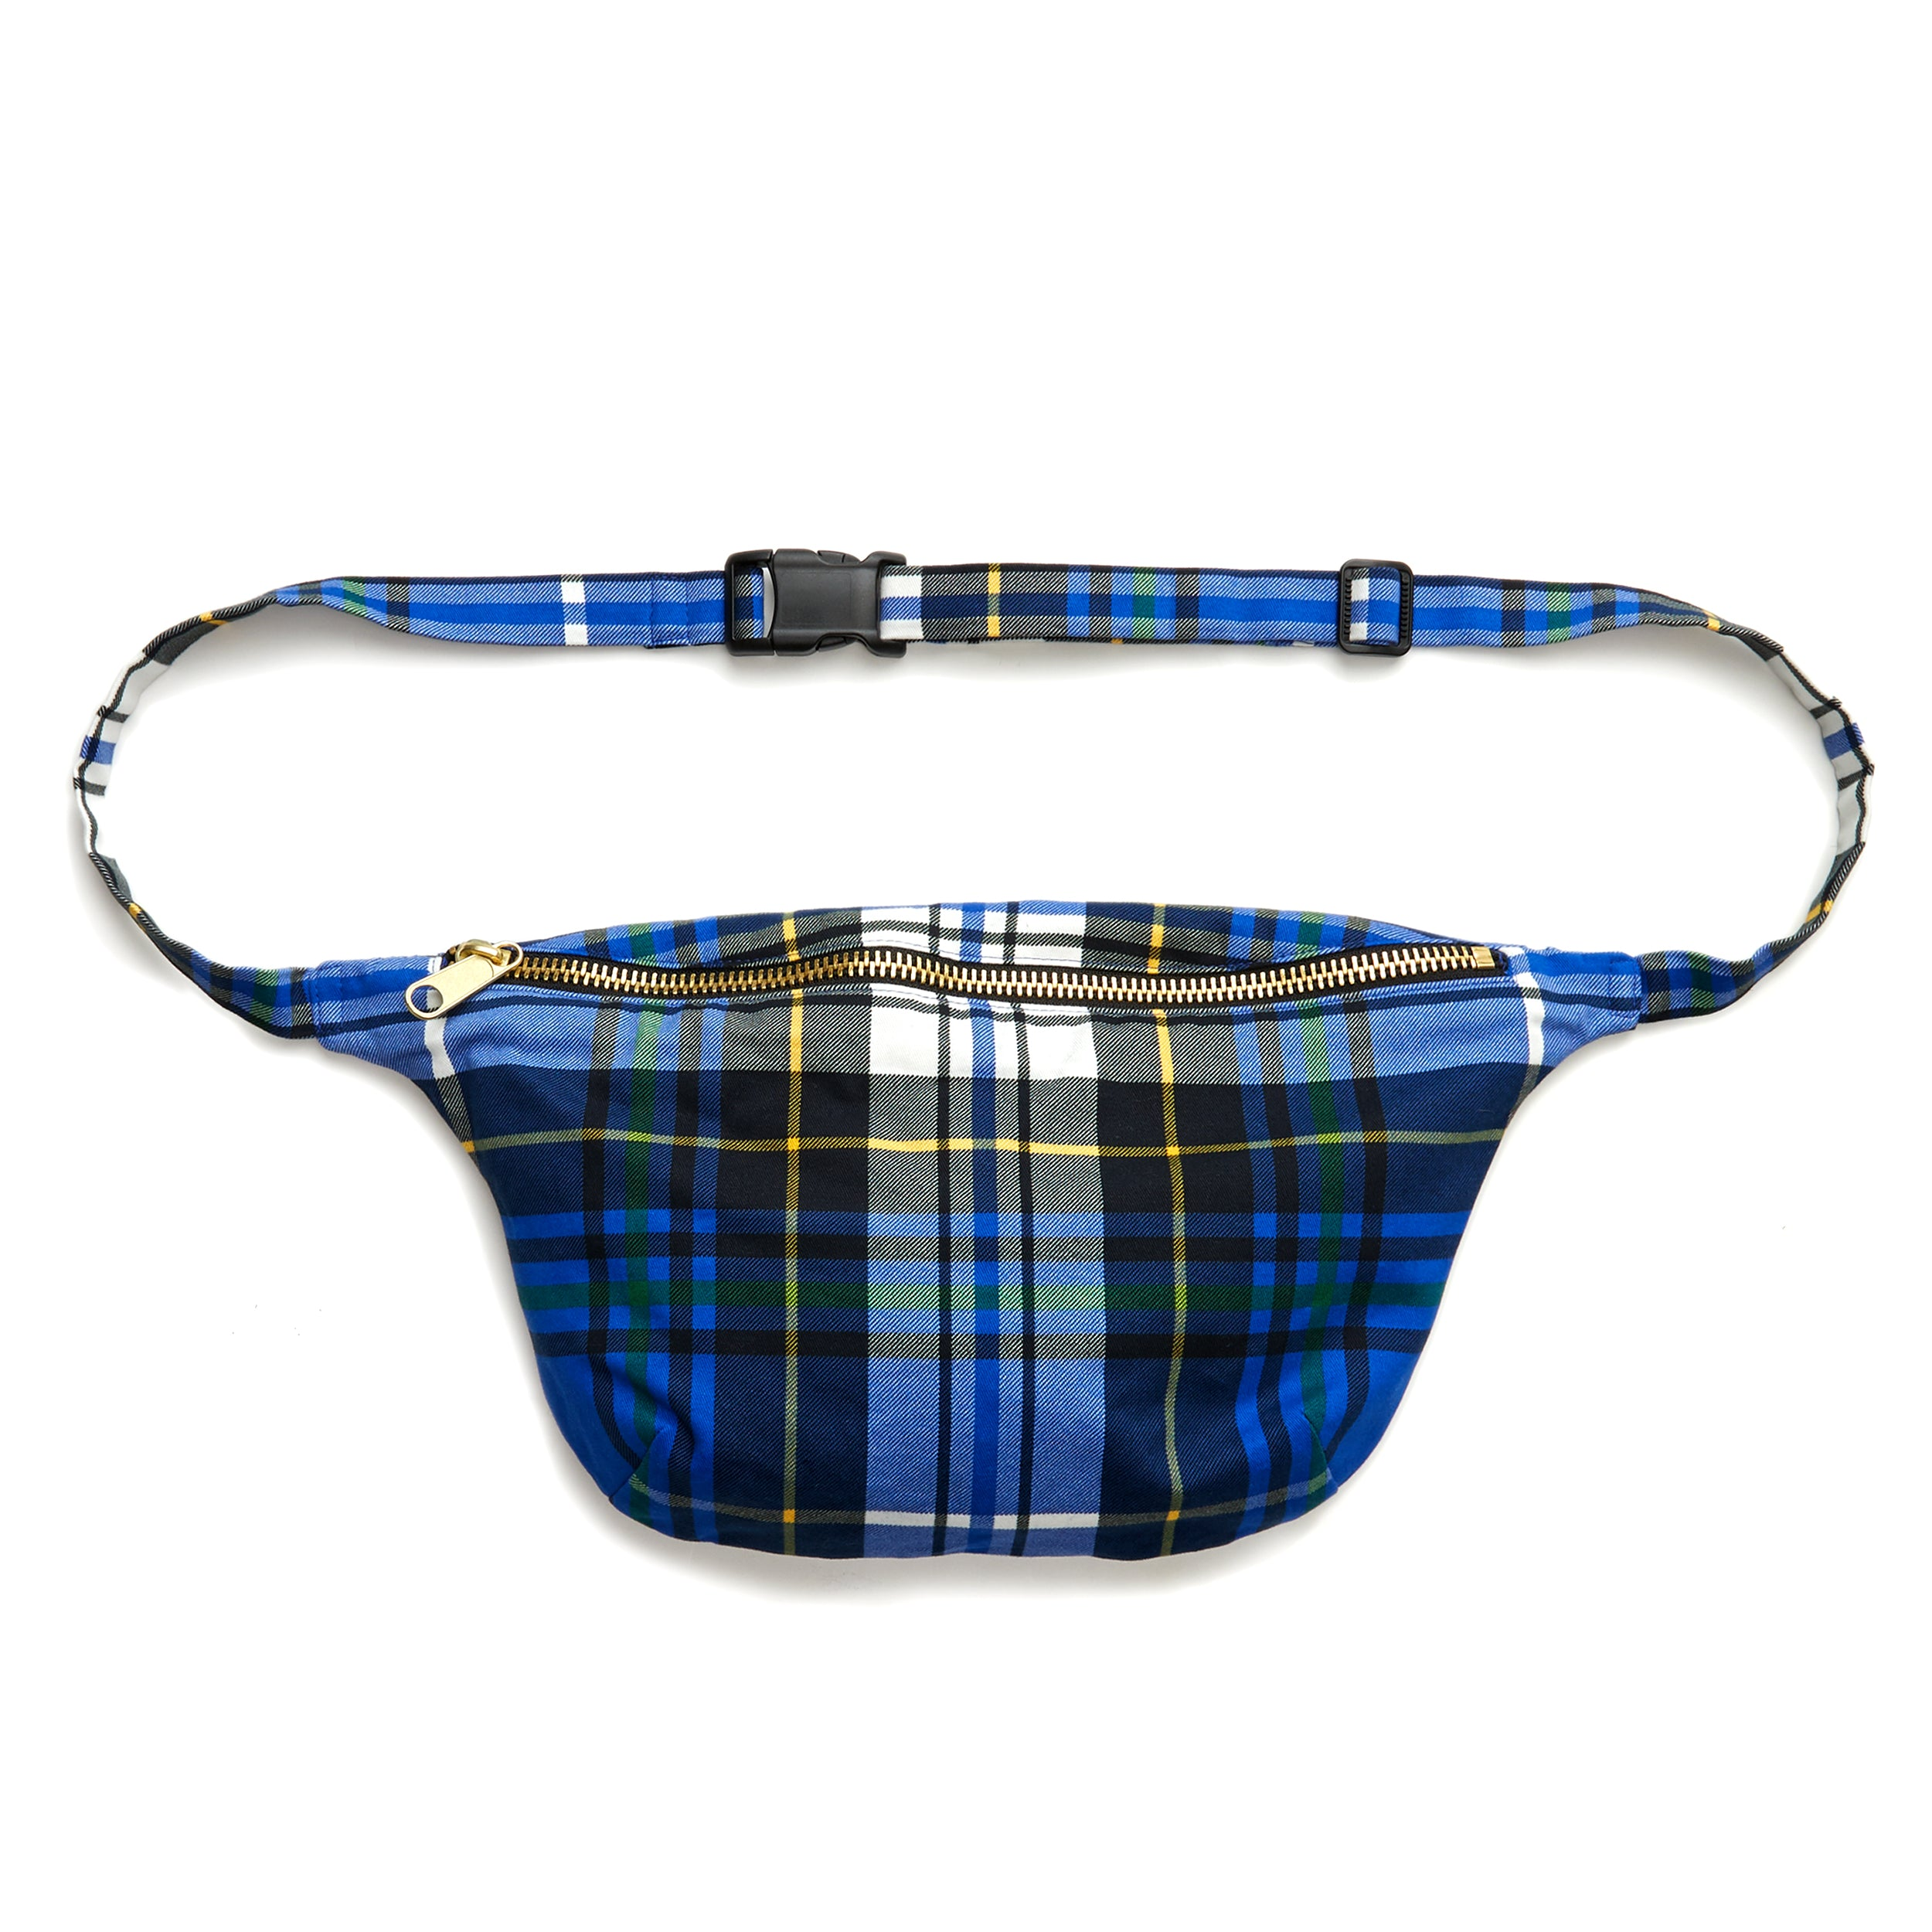 The Lee Plaid Sling Bag